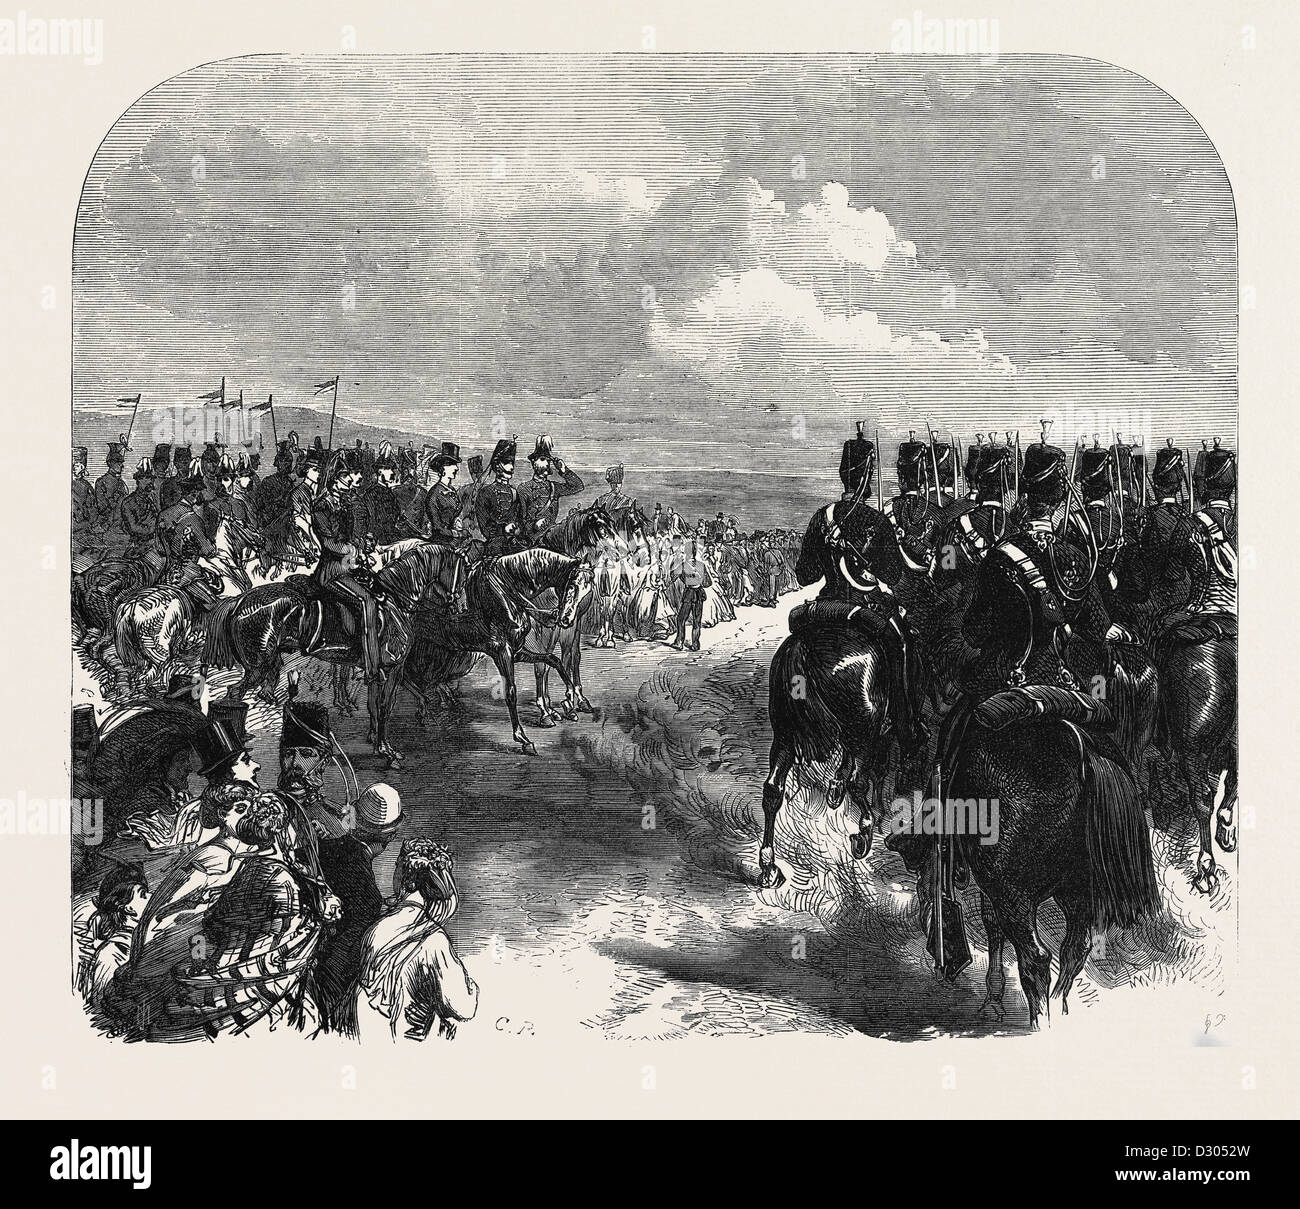 FIELD-DAY AT ALDERSHOTT: CAVALRY MARCHING PAST THE PRINCE AND PRINCESS OF WALES UK 1866 - Stock Image